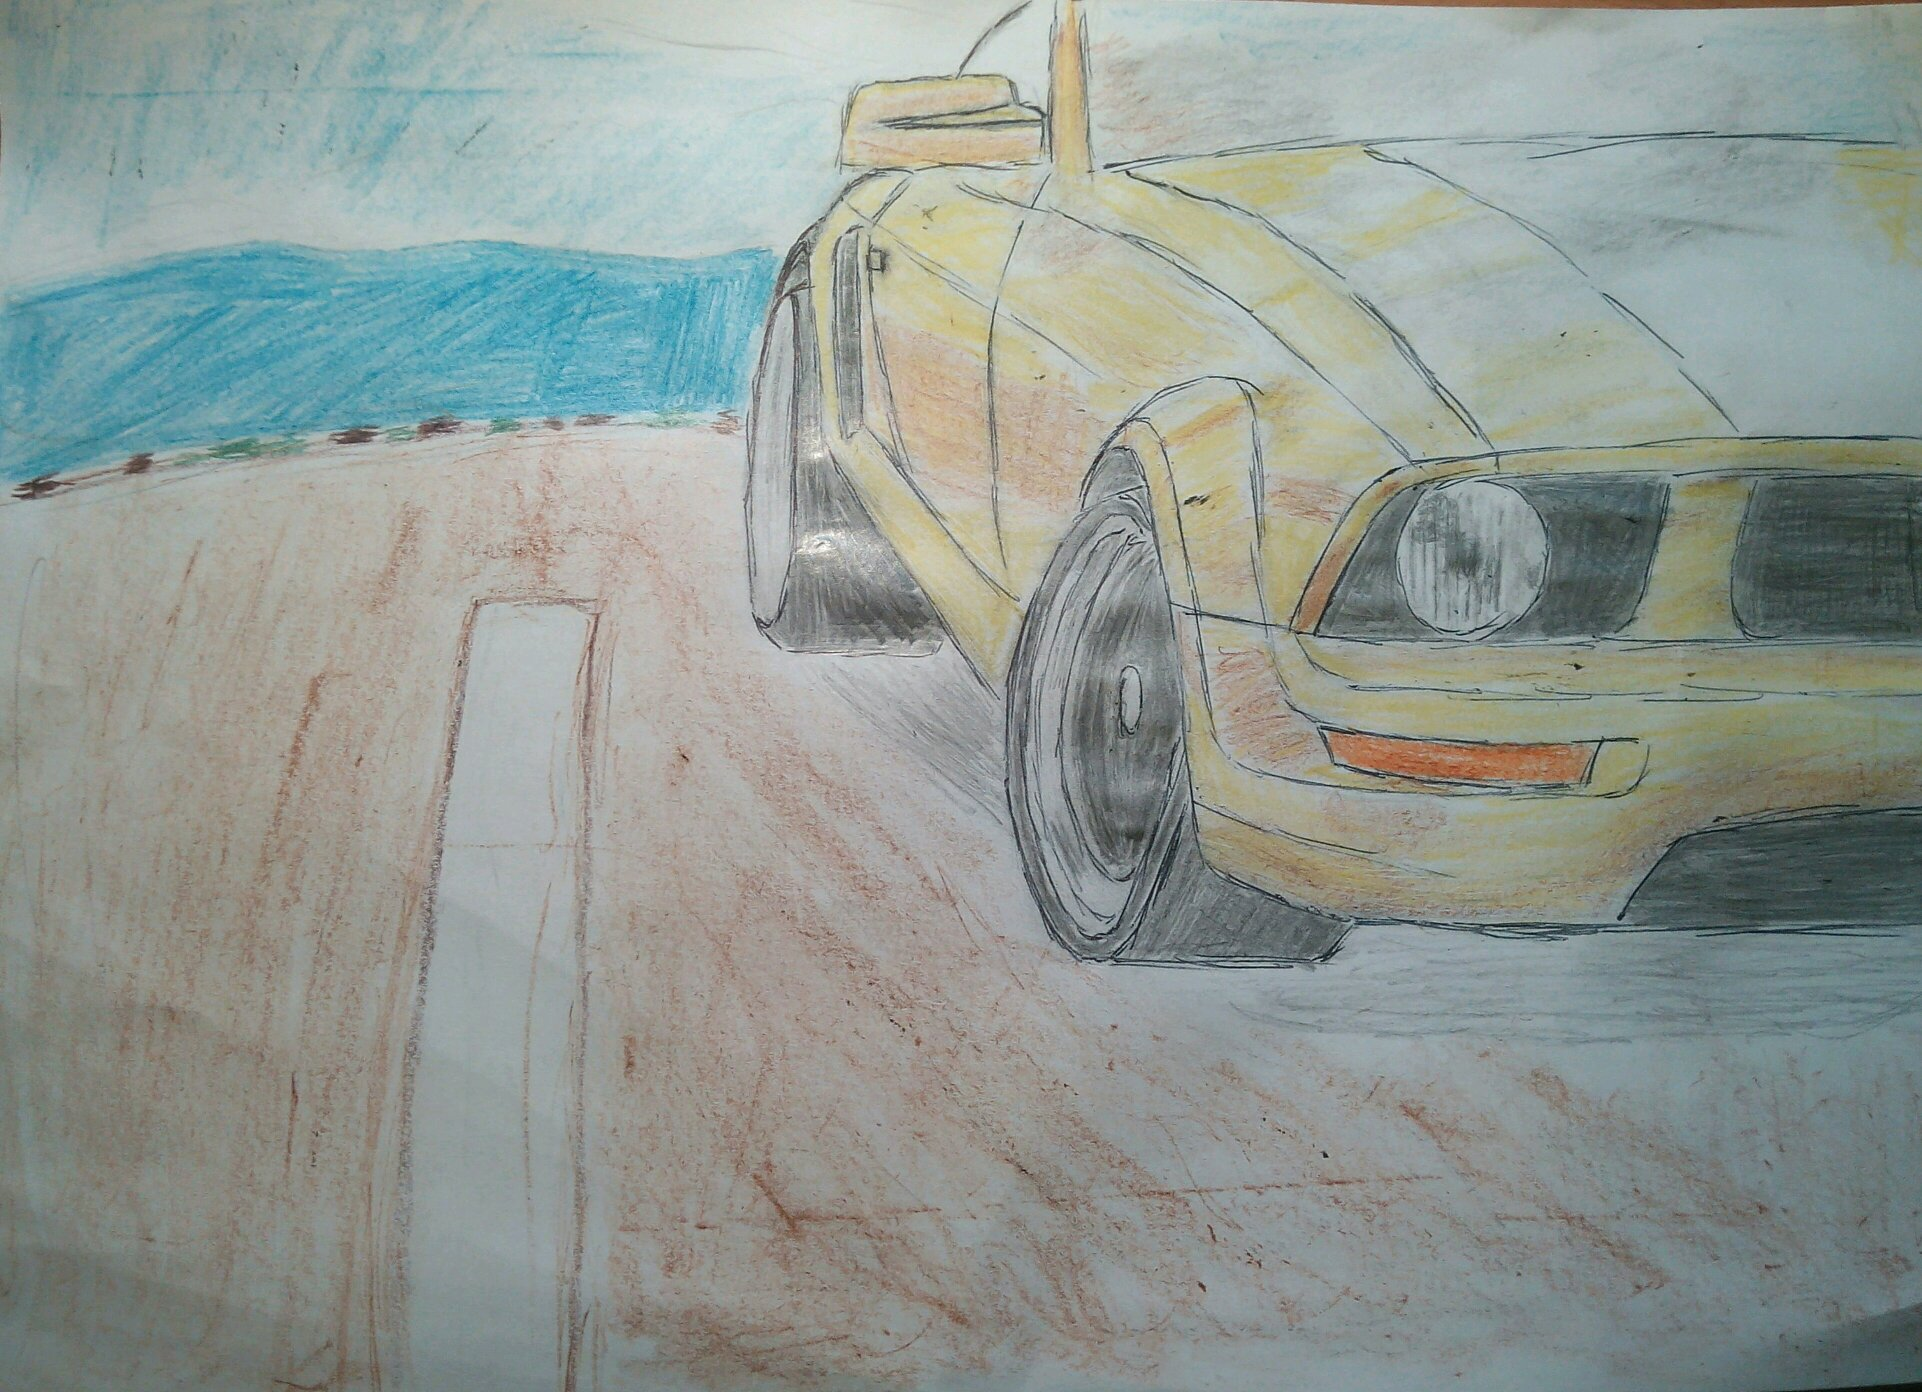 2005 Ford Mustang Gt Drawing And My First Attempt At Car Shadowing